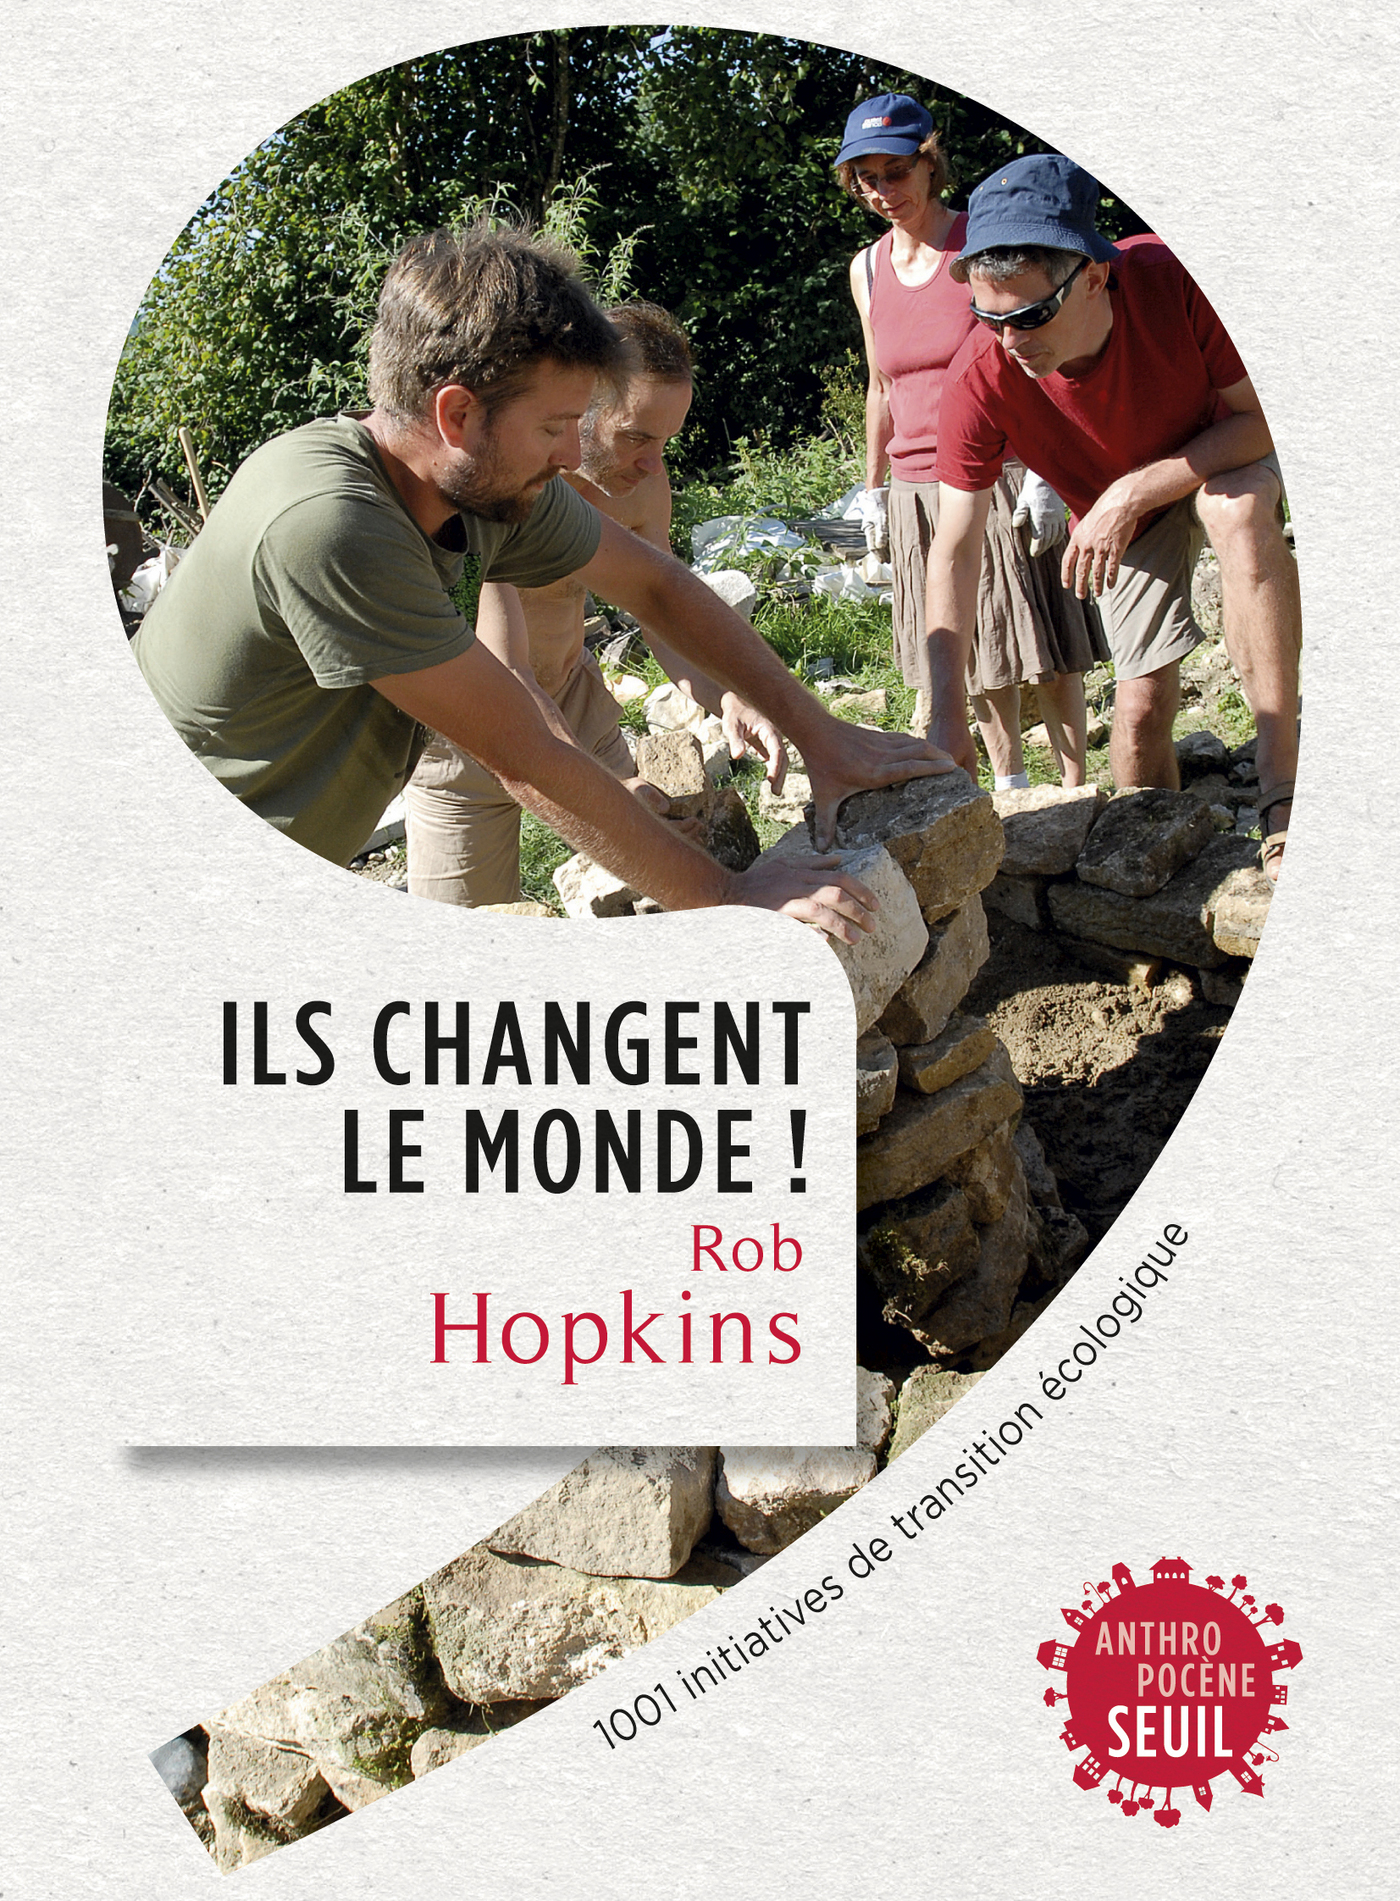 Ils changent le monde! . 1001 initiatives de transition écologique